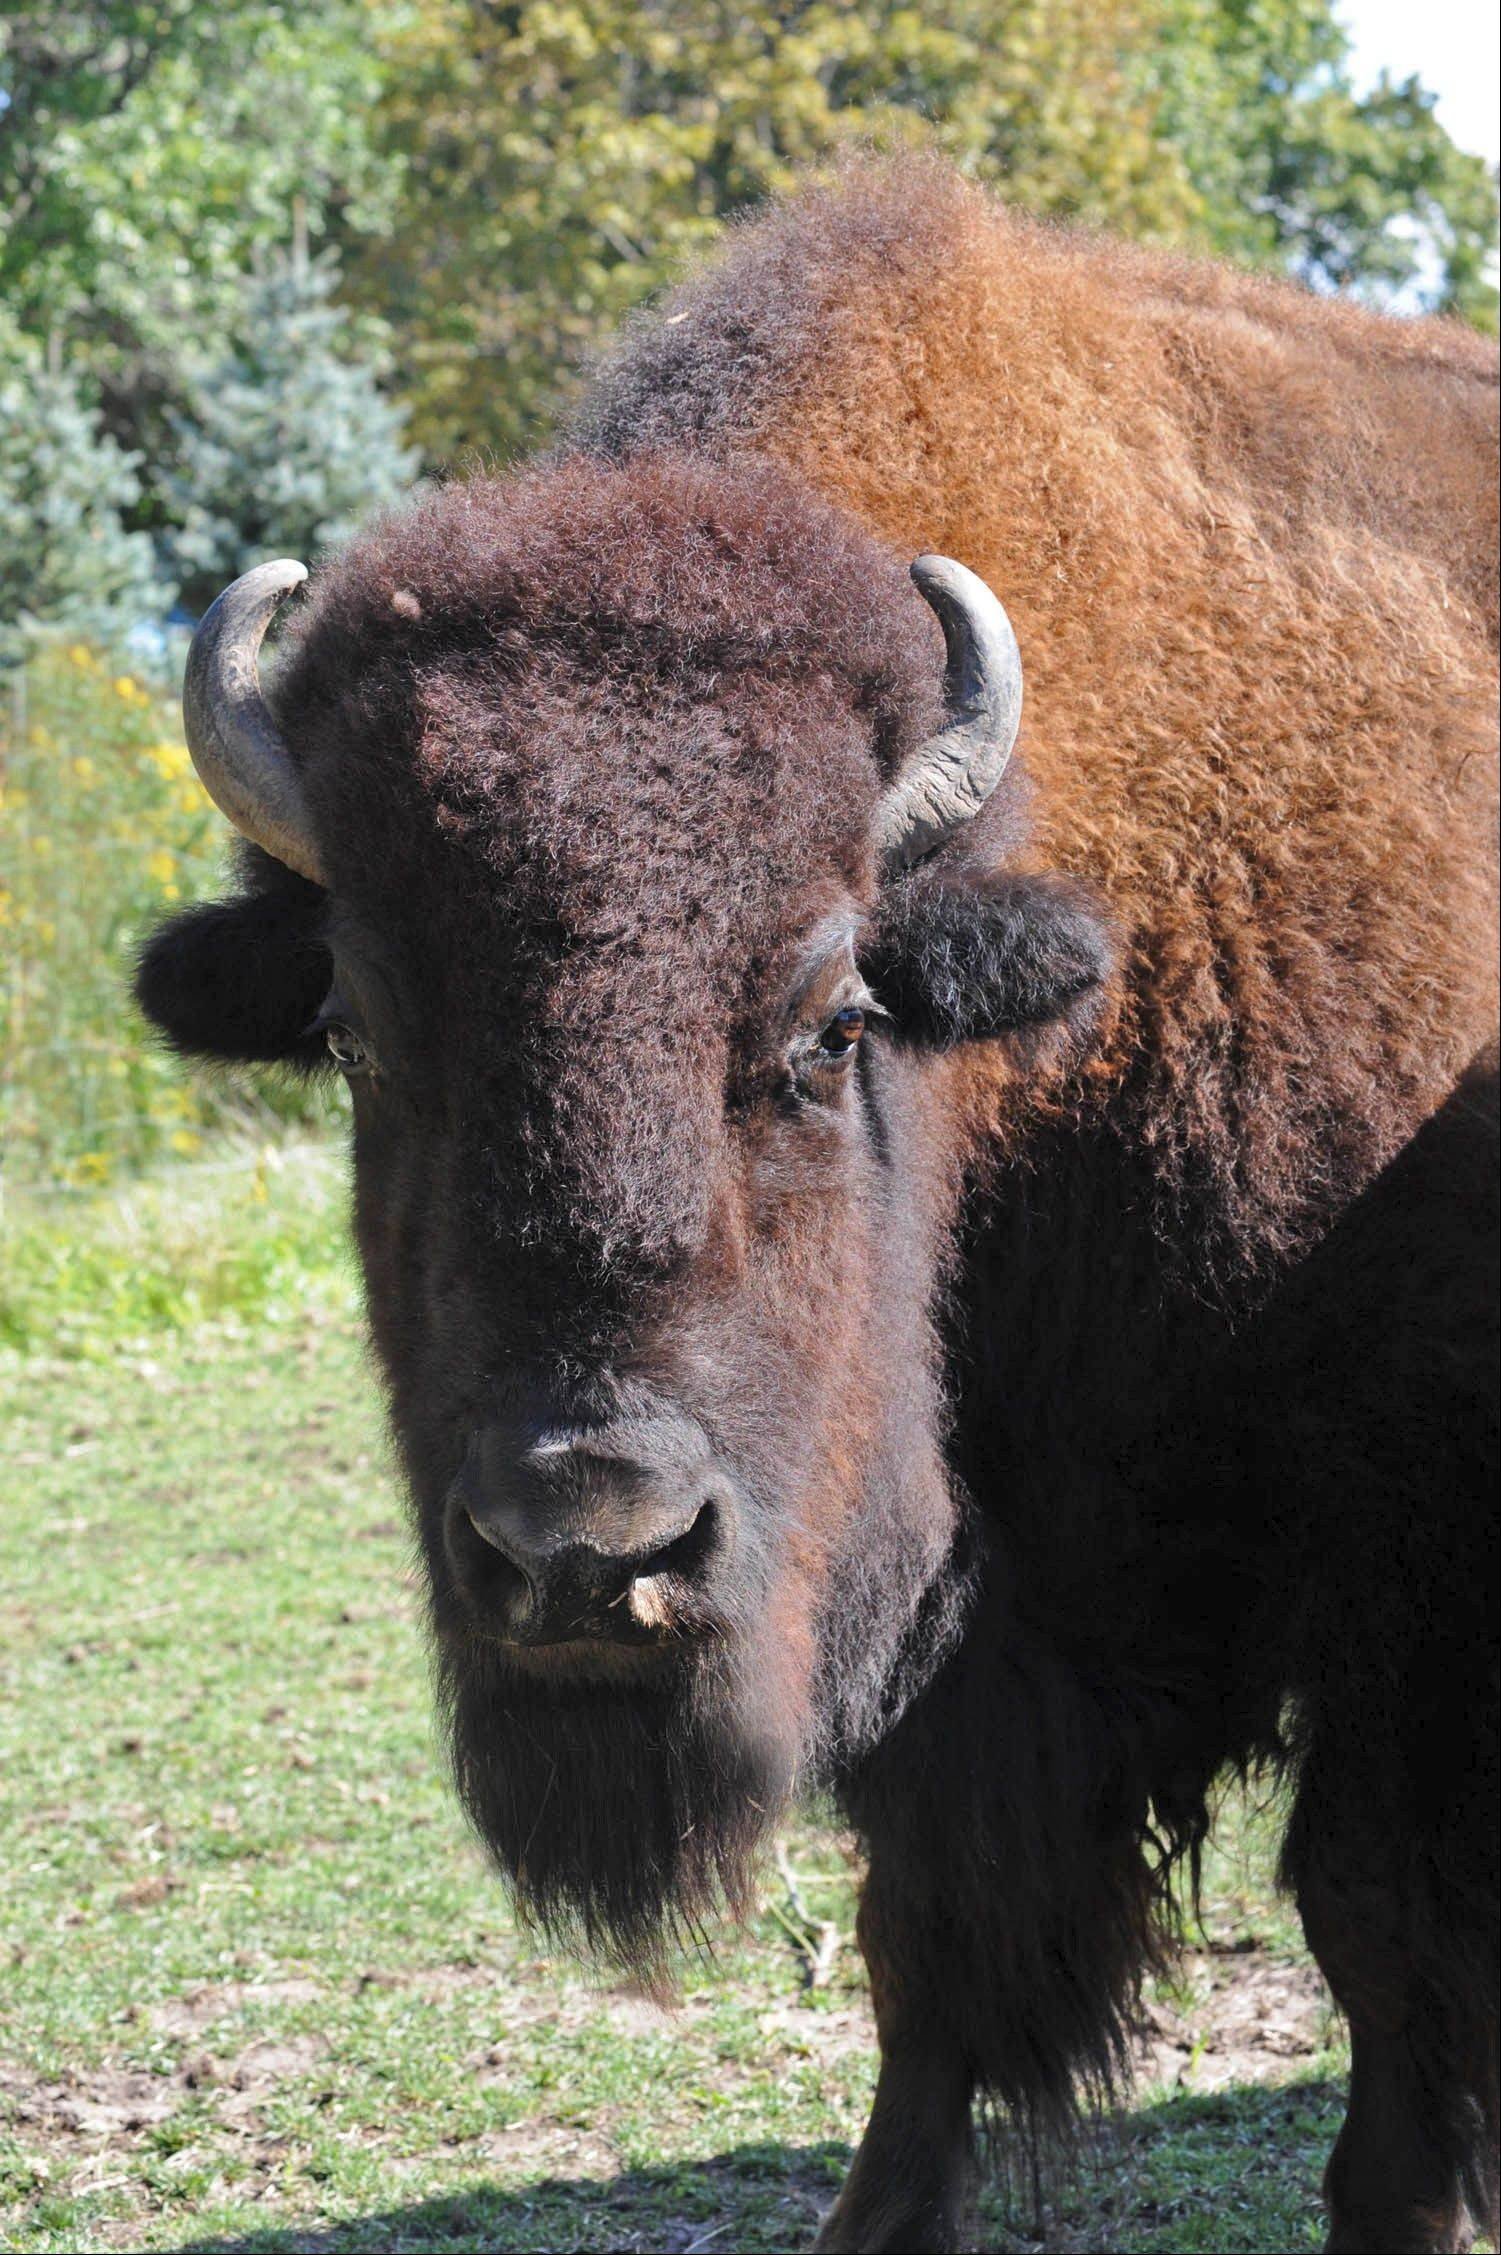 Becky, a 13-year-old bison who now calls Brookfield Zoo home, soon will be moving to the Lords Park Zoo in Elgin with her herd mate Drew, also 13. They were supposed to have moved to Elgin this month, but Drew broke a horn.